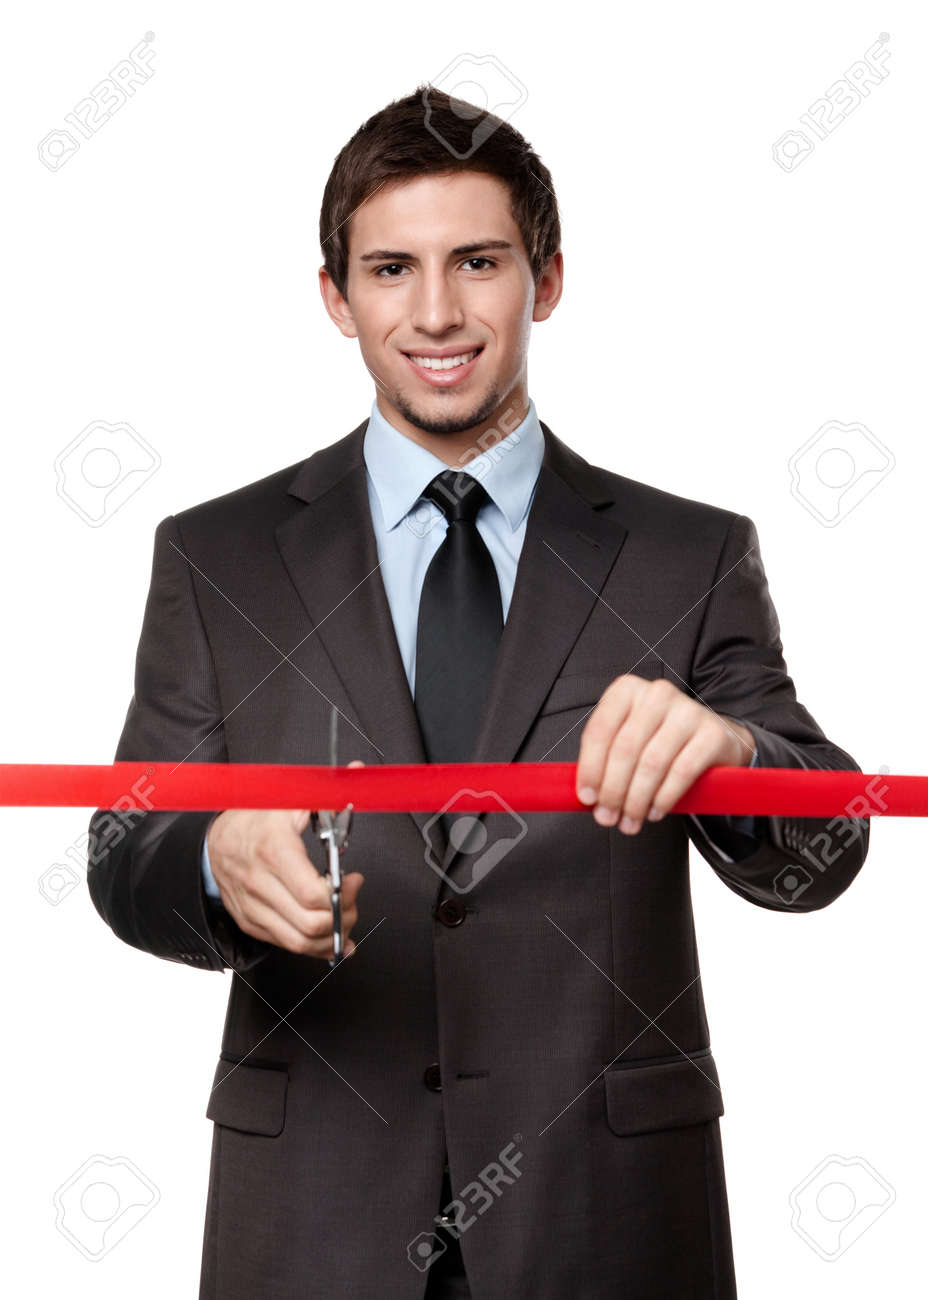 A man cutting a red ribbon with scissors, isolated on white Stock Photo - 15044378